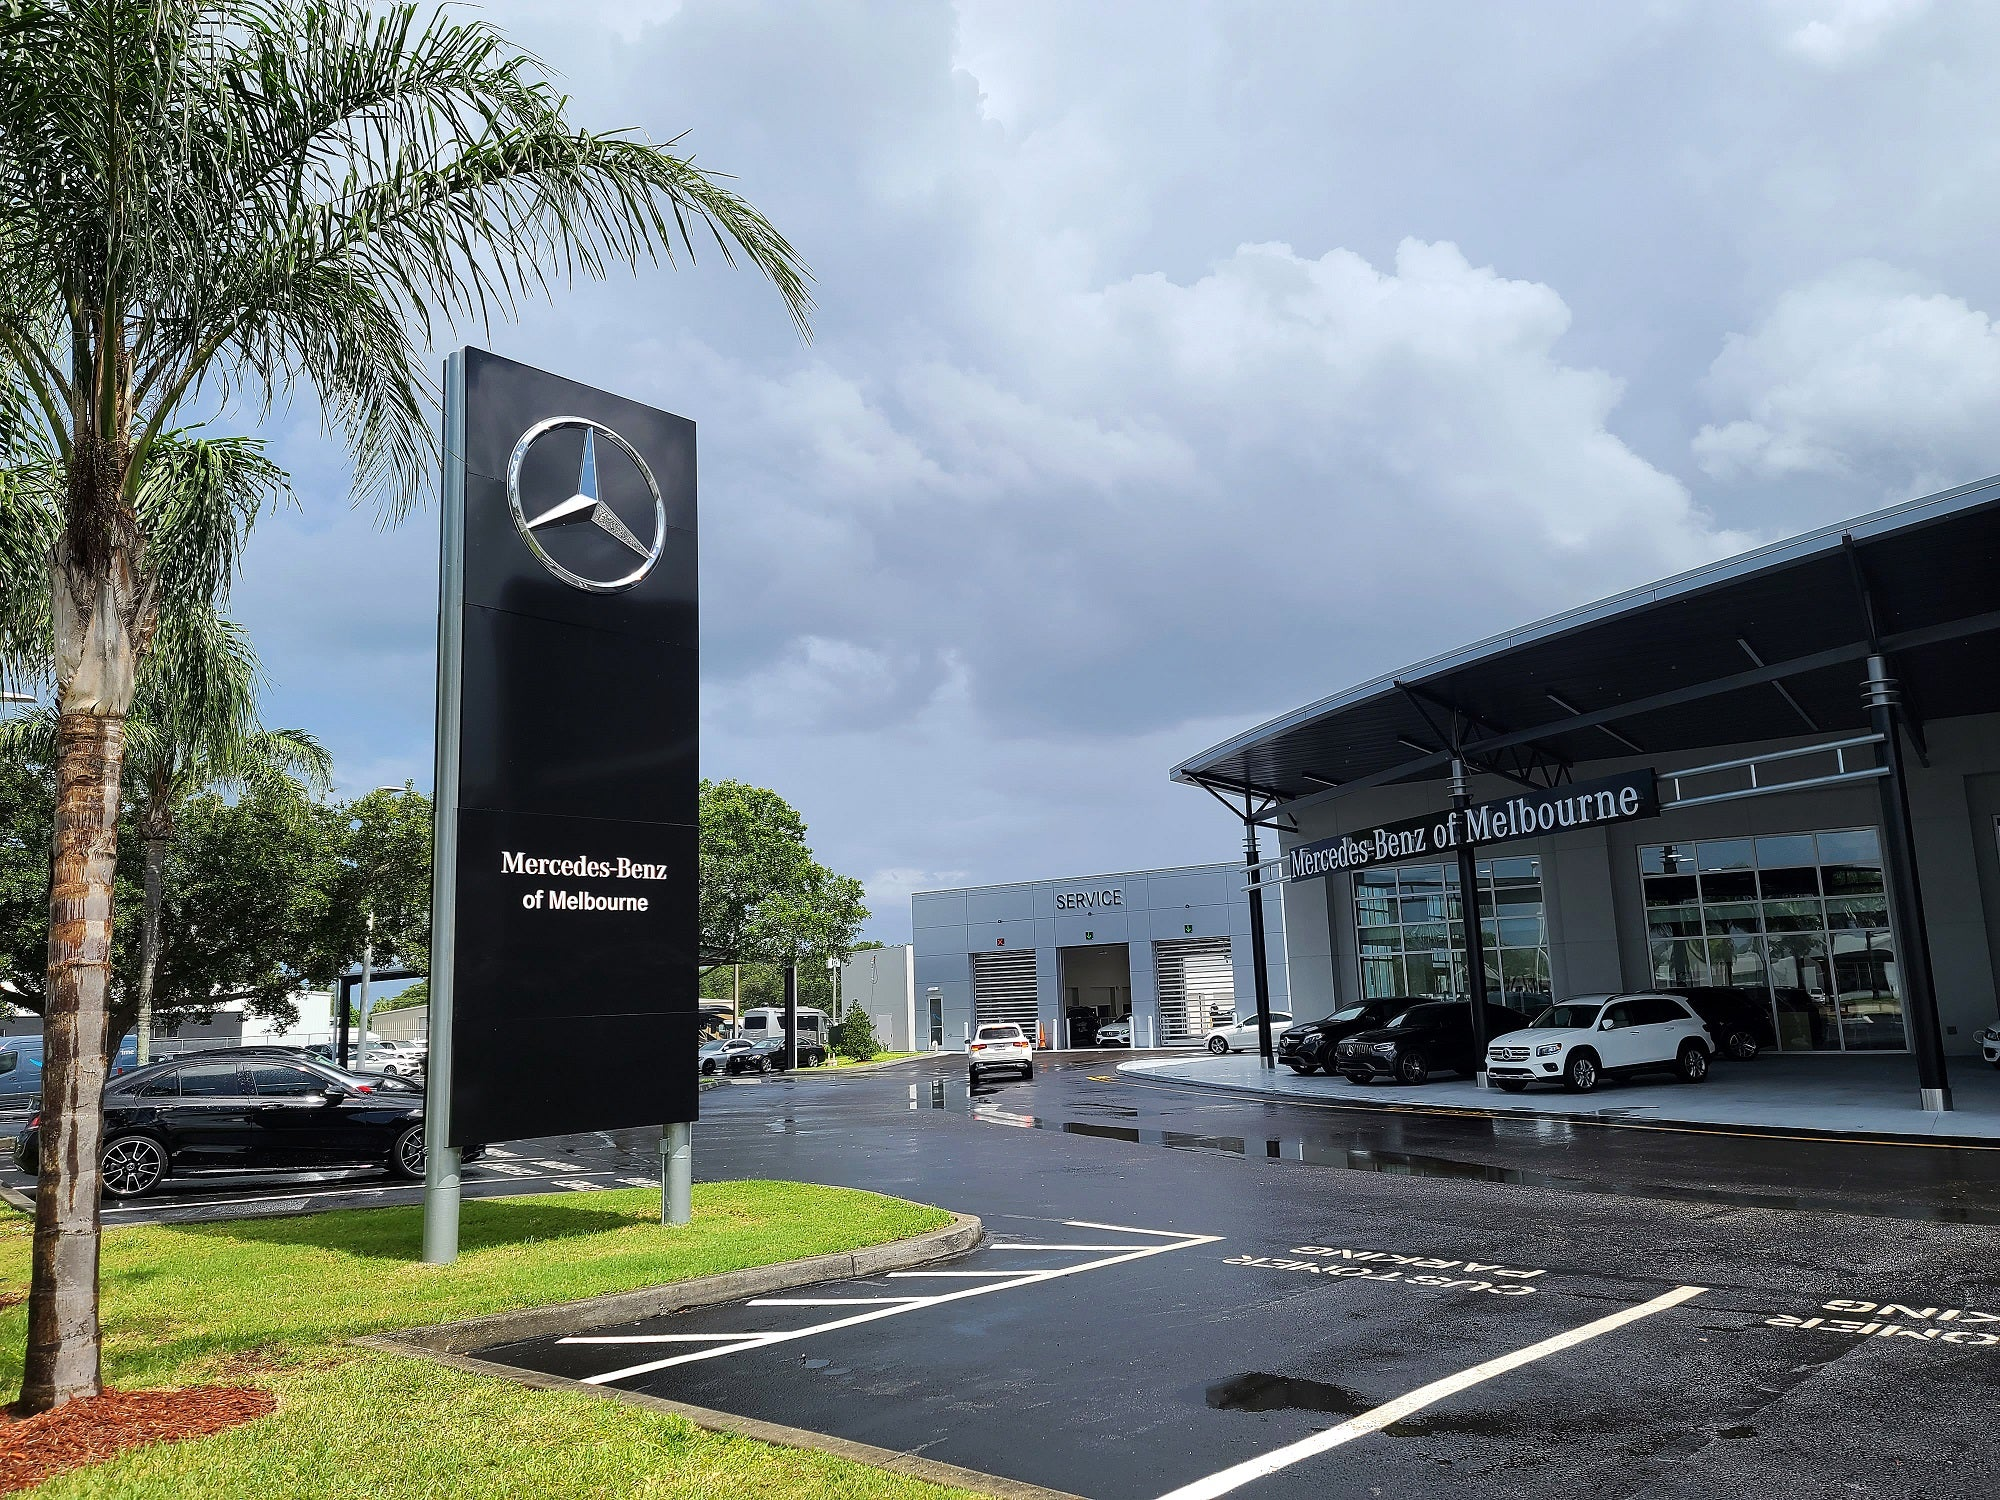 mercedes benz of melbourne new and used mercedes benz dealer in melbourne fl mercedes benz of melbourne new and